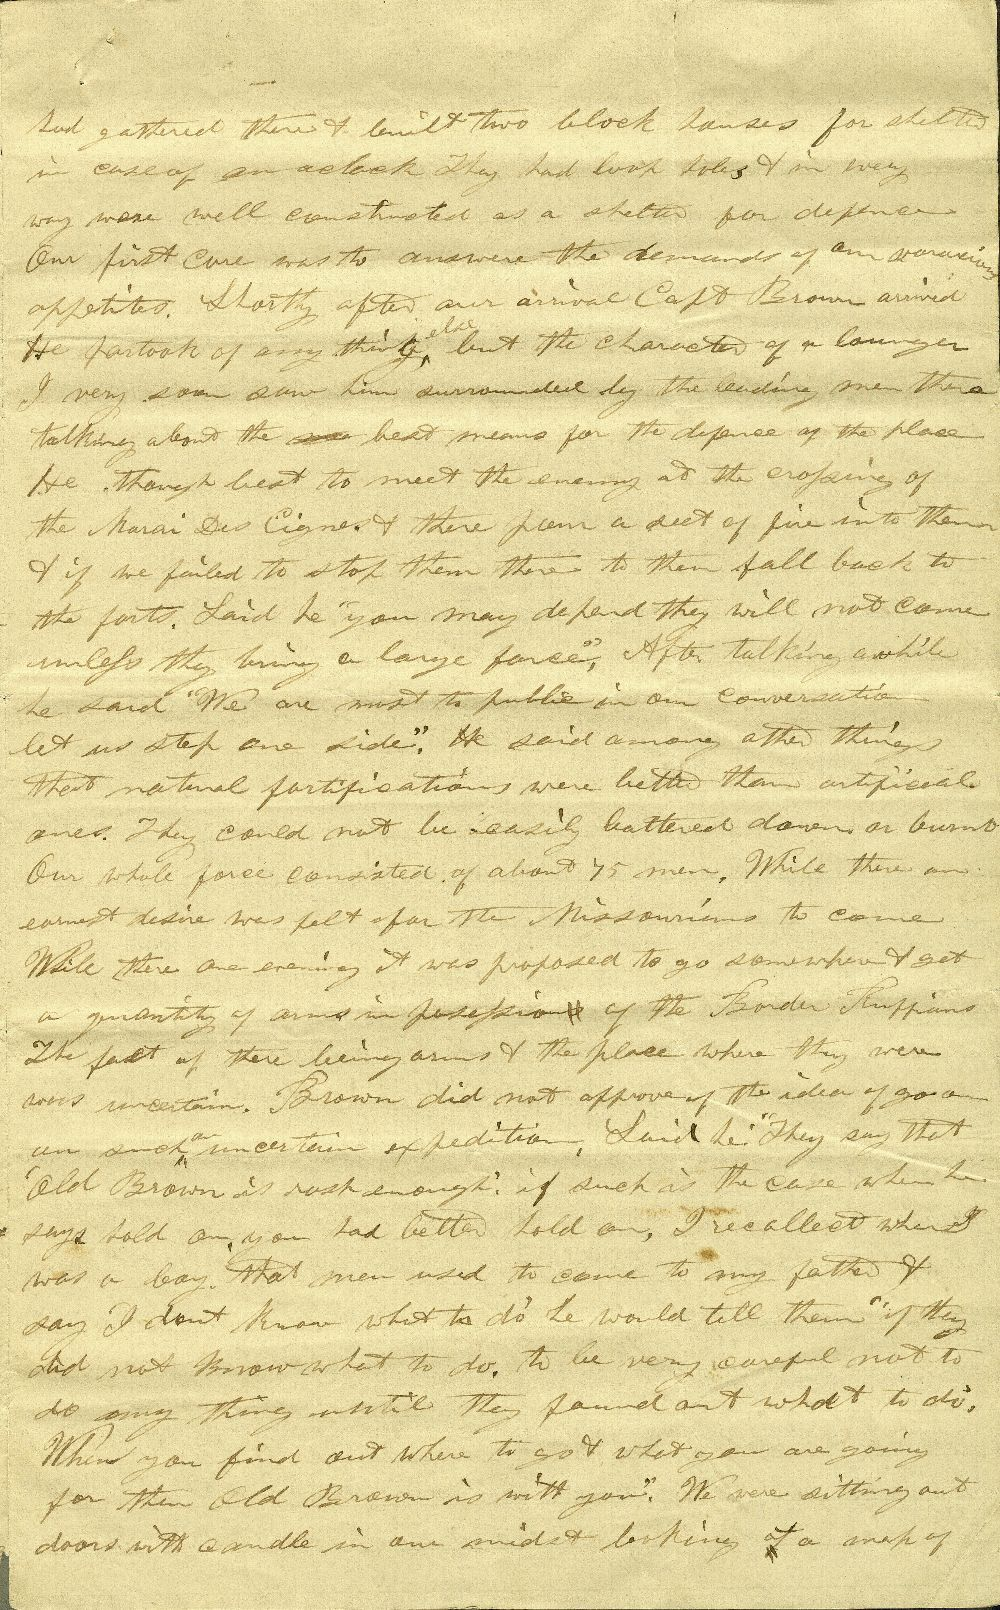 C. G. Allen's response to Redpath and Hinton's call for information about John Brown - 3